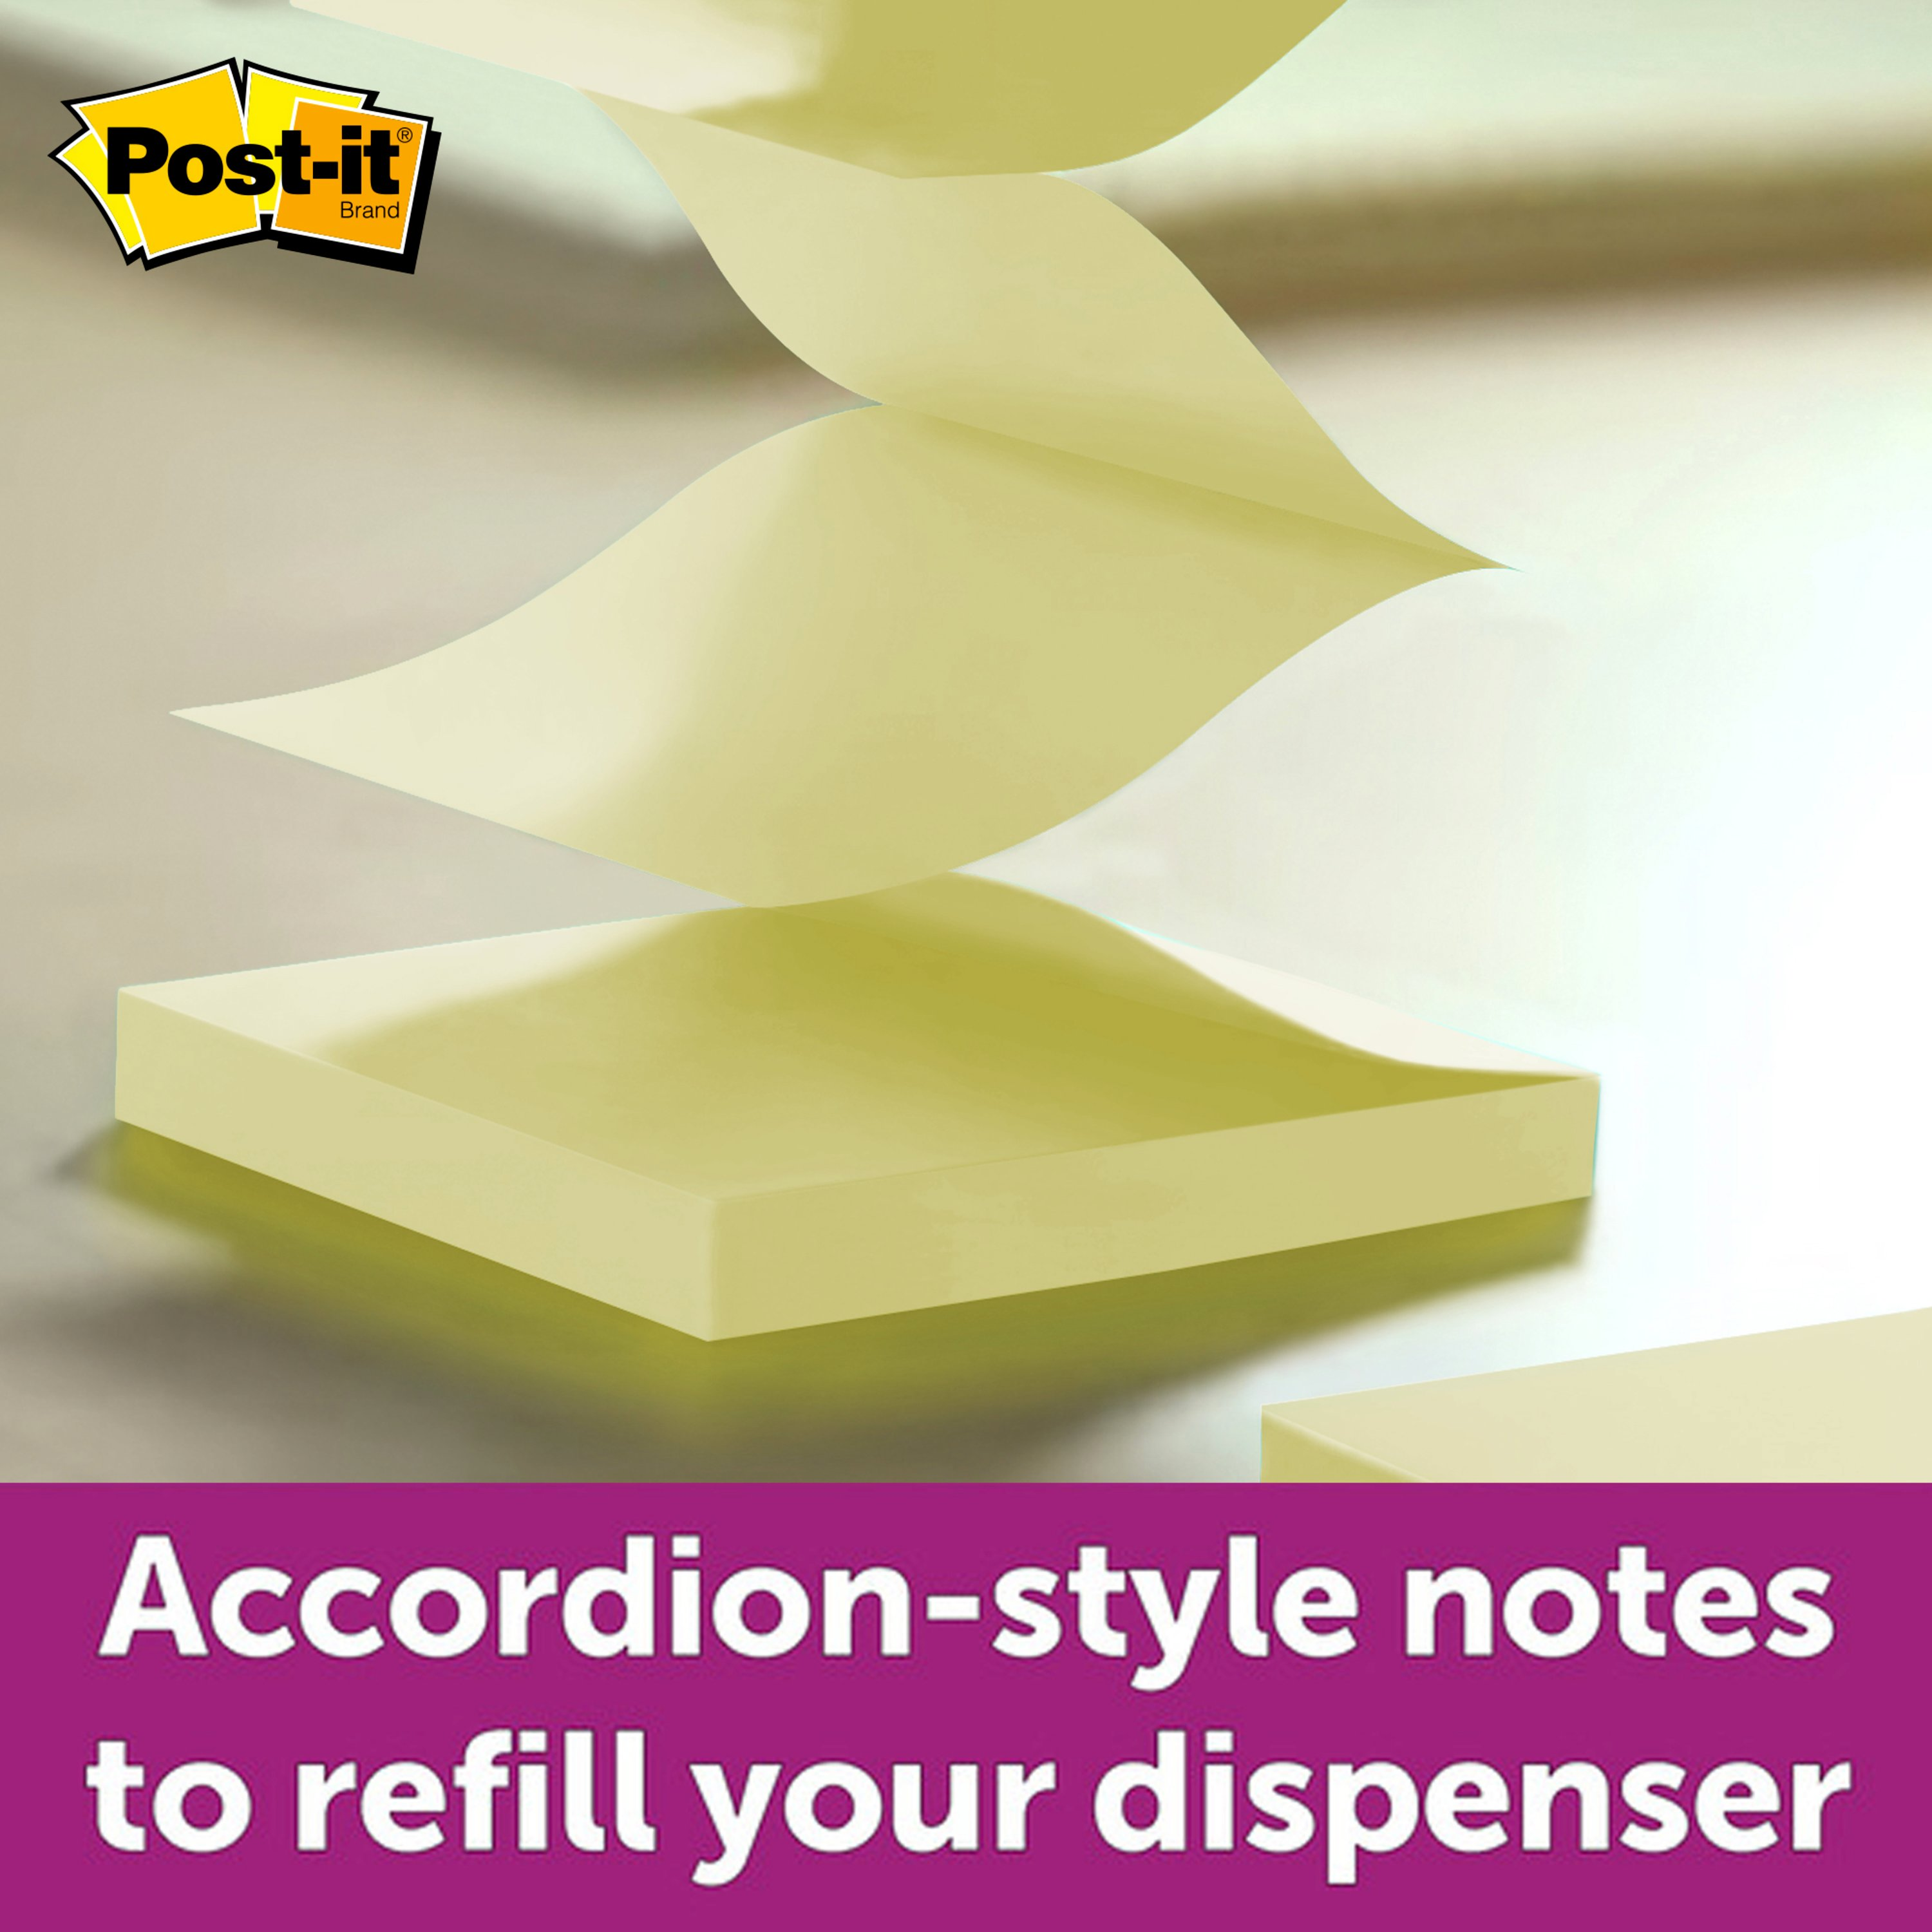 Post-it R440YWSS Pop-up Notes Refill 5//Pack 4 x 4 Canary Yellow Lined 90-Sheet